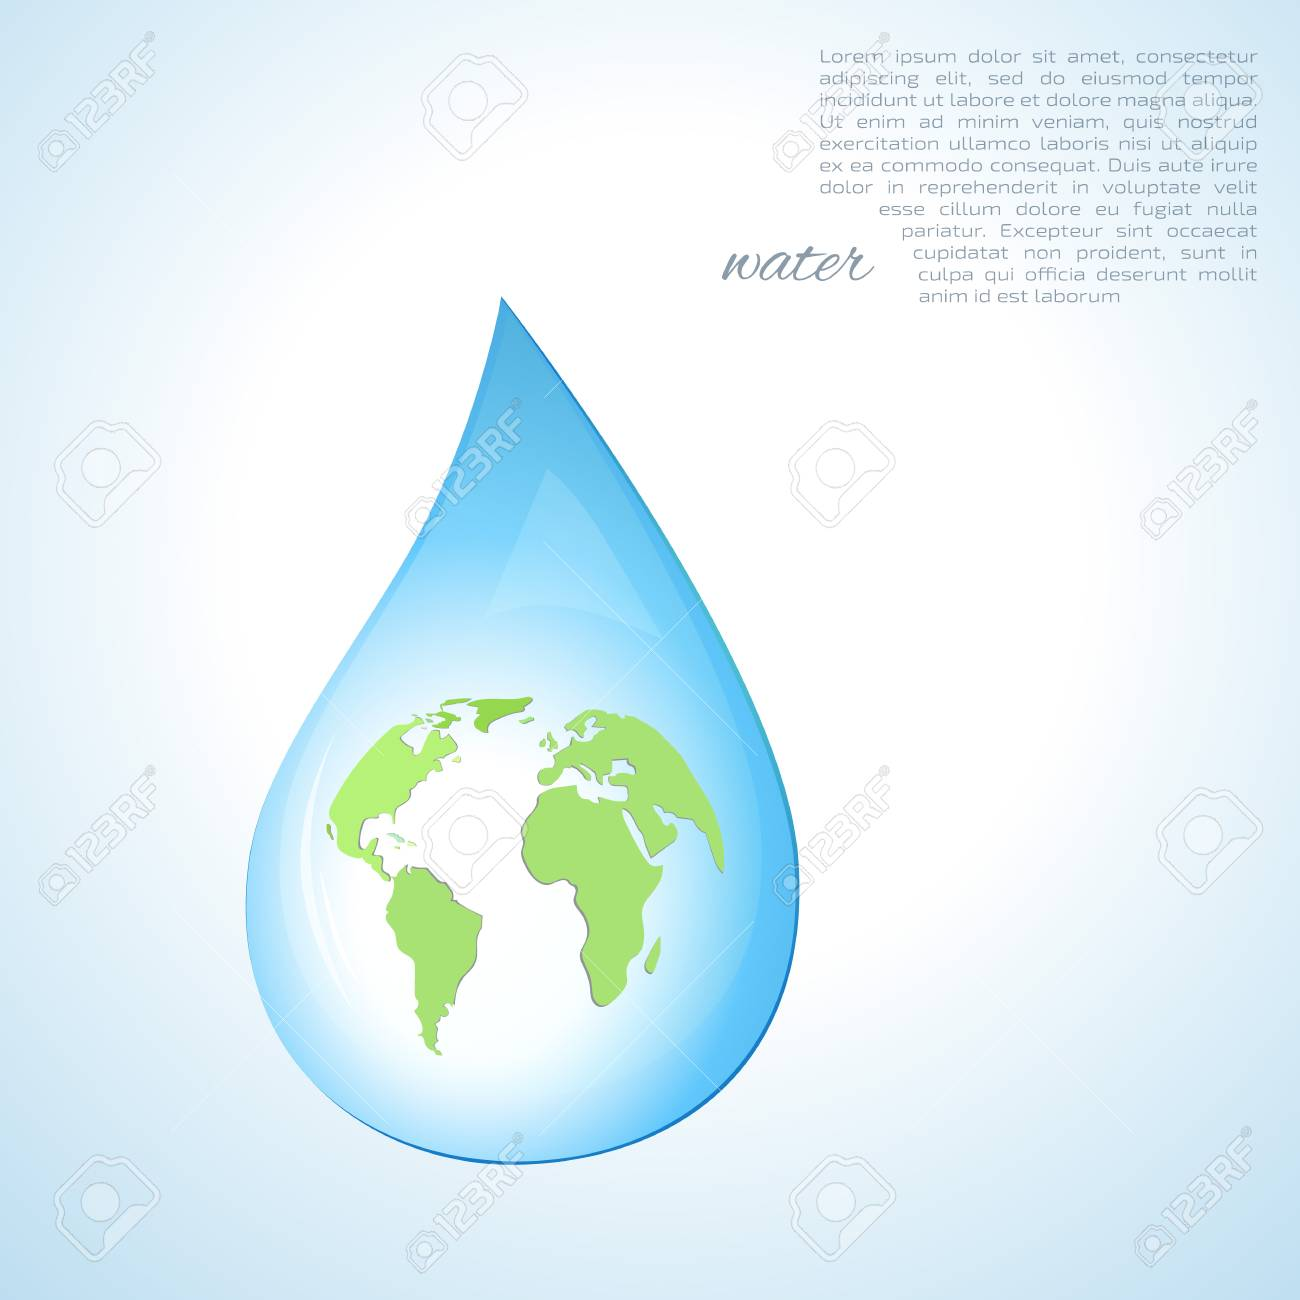 World map in a water drop environmental symbol royalty free vector world map in a water drop environmental symbol gumiabroncs Gallery